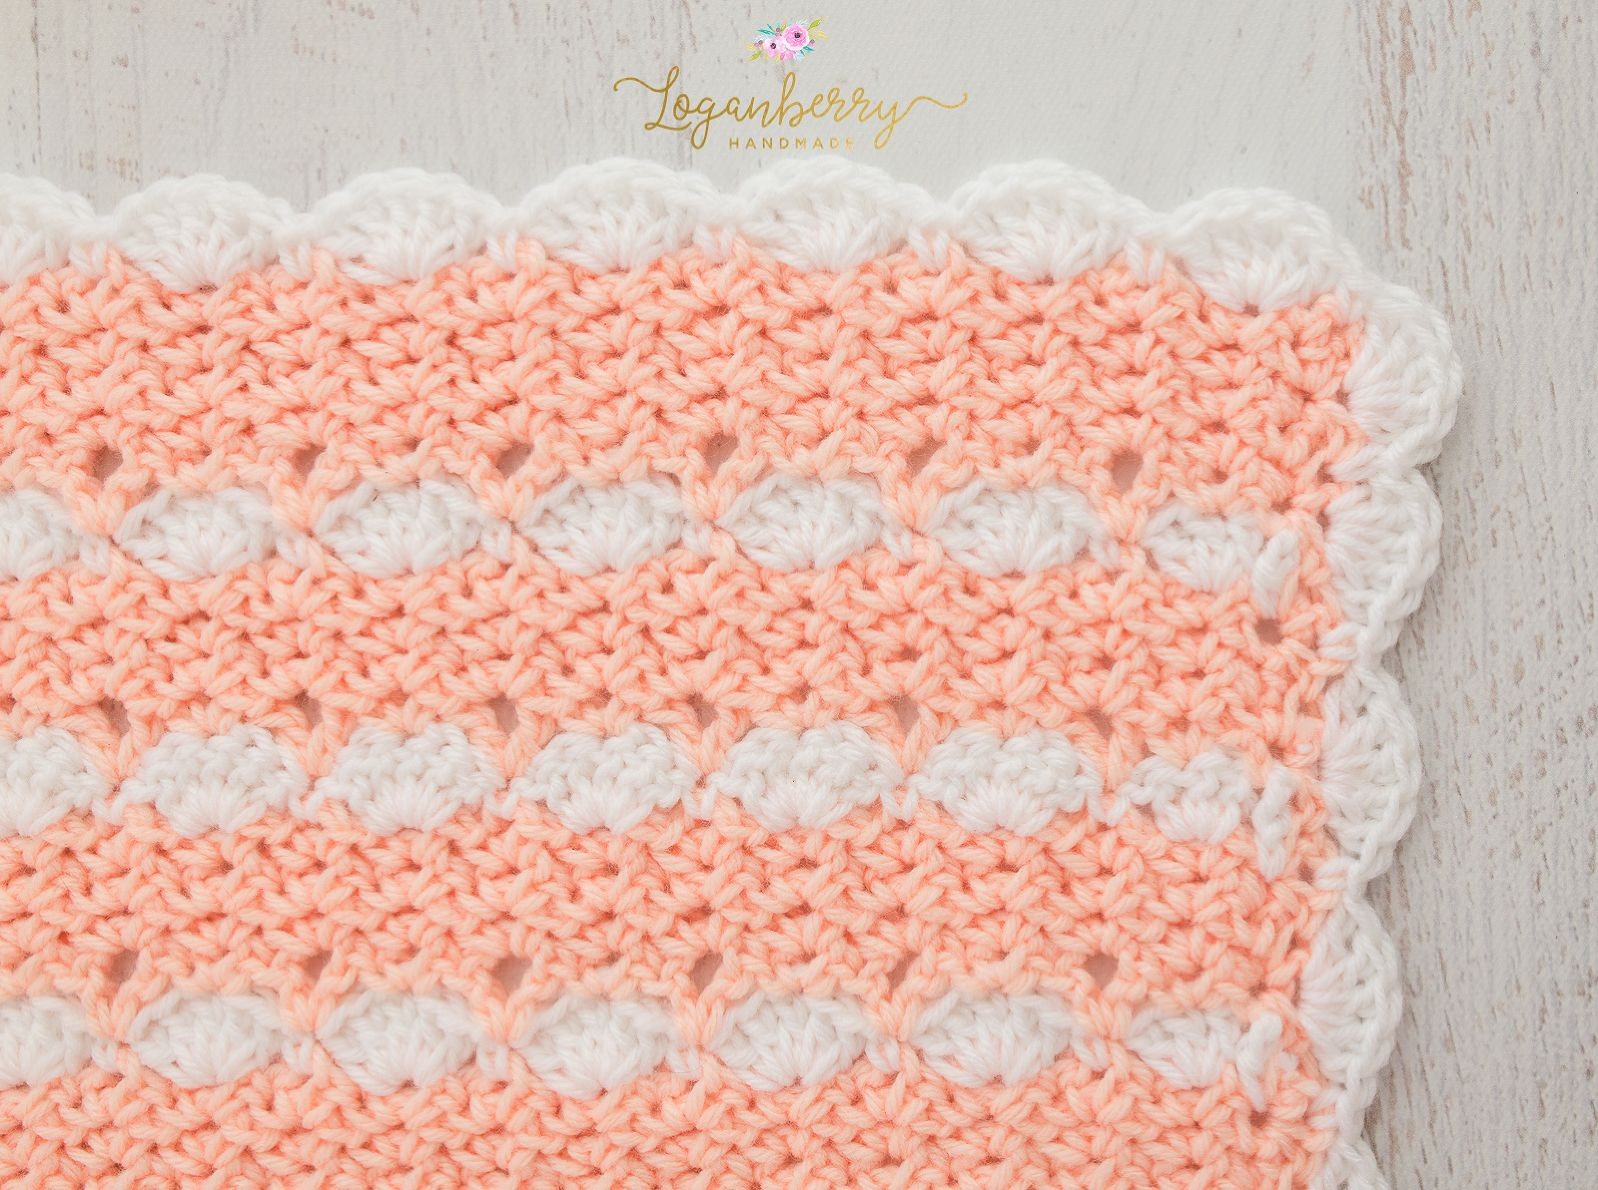 Peaches and cream crochet baby blanket baby blanket crochet peaches and cream crochet baby blanket baby blanket crochet pattern crochet baby blanket tutorial baditri Image collections